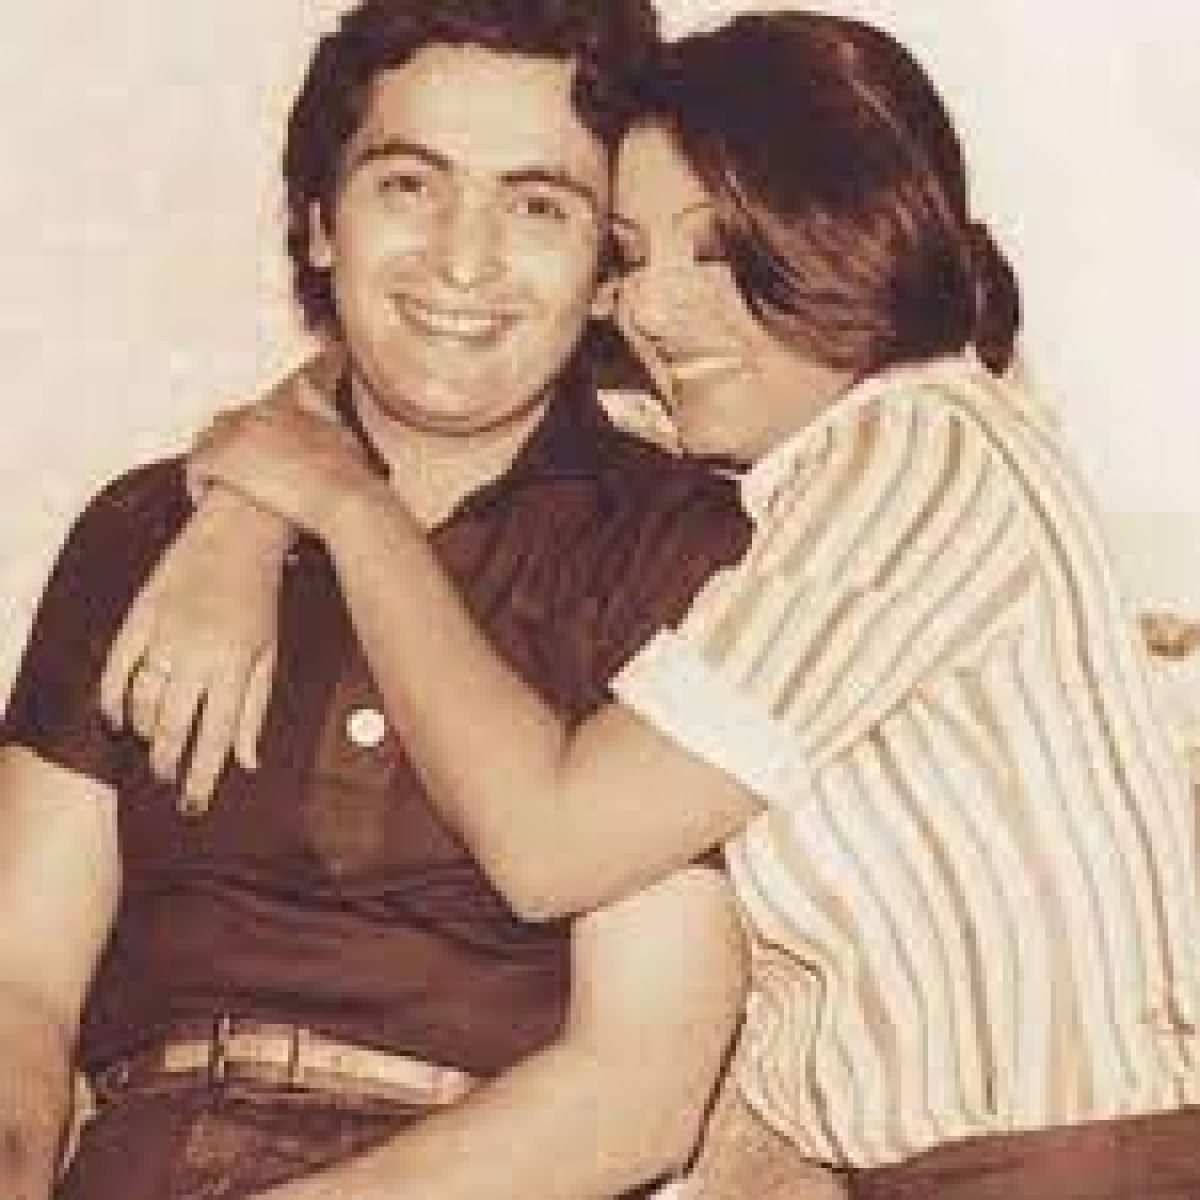 In sickness and in health: On Rishi Kapoor's death anniversary, here's a look at his love story with Neetu Kapoor